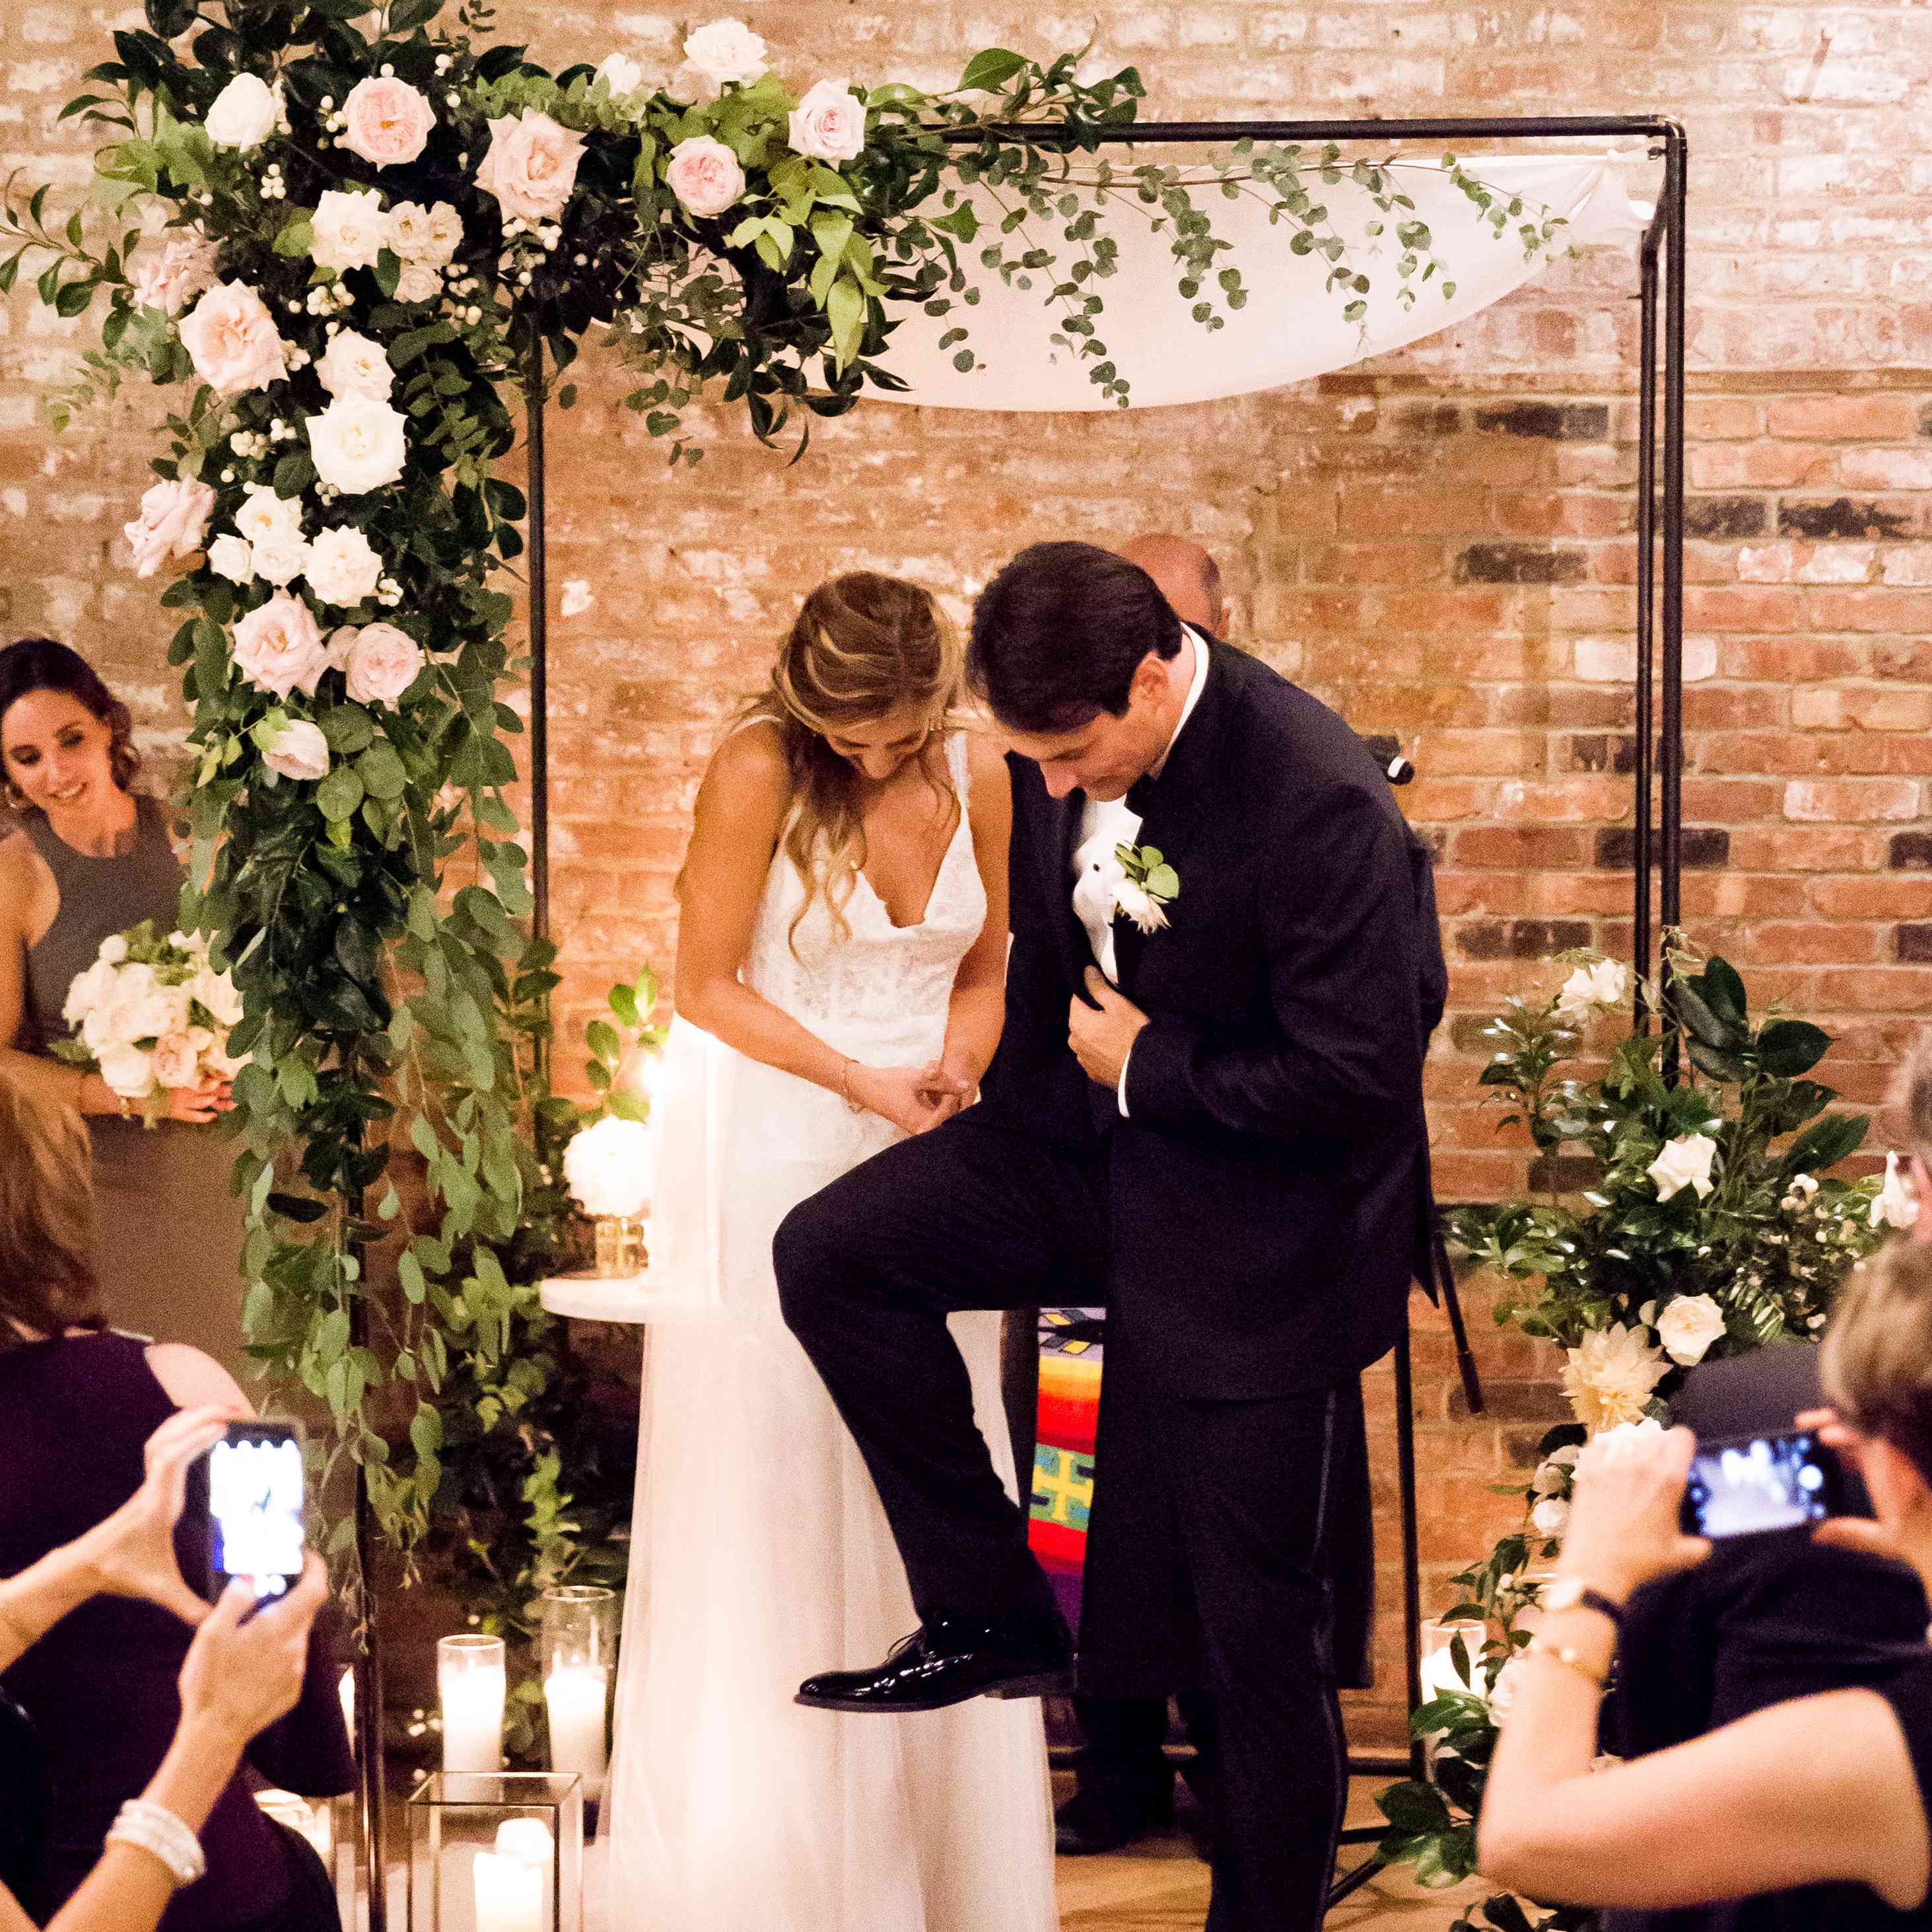 <p>jewish wedding traditions breaking the glass</p><br><br>